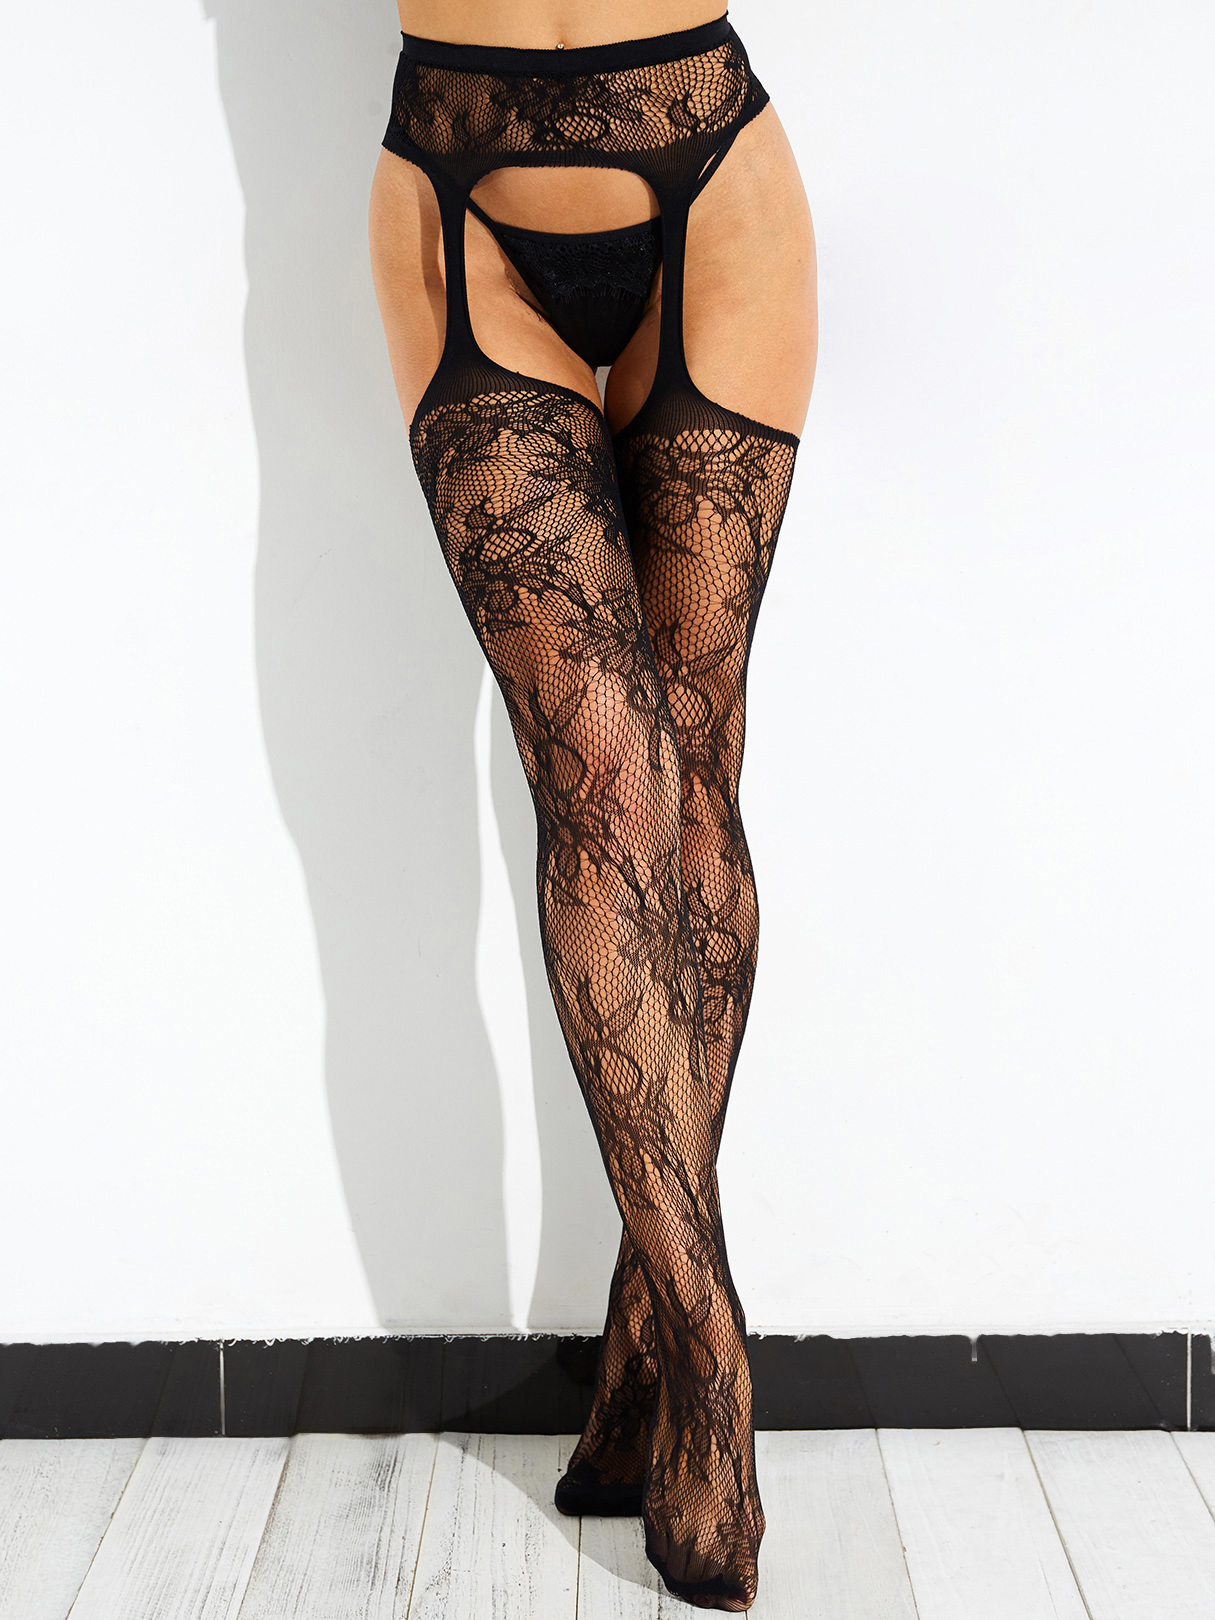 Black High-waisted Fishnet Thigh High Embroidery Garter Stockings Pantyhose - Pattern 2